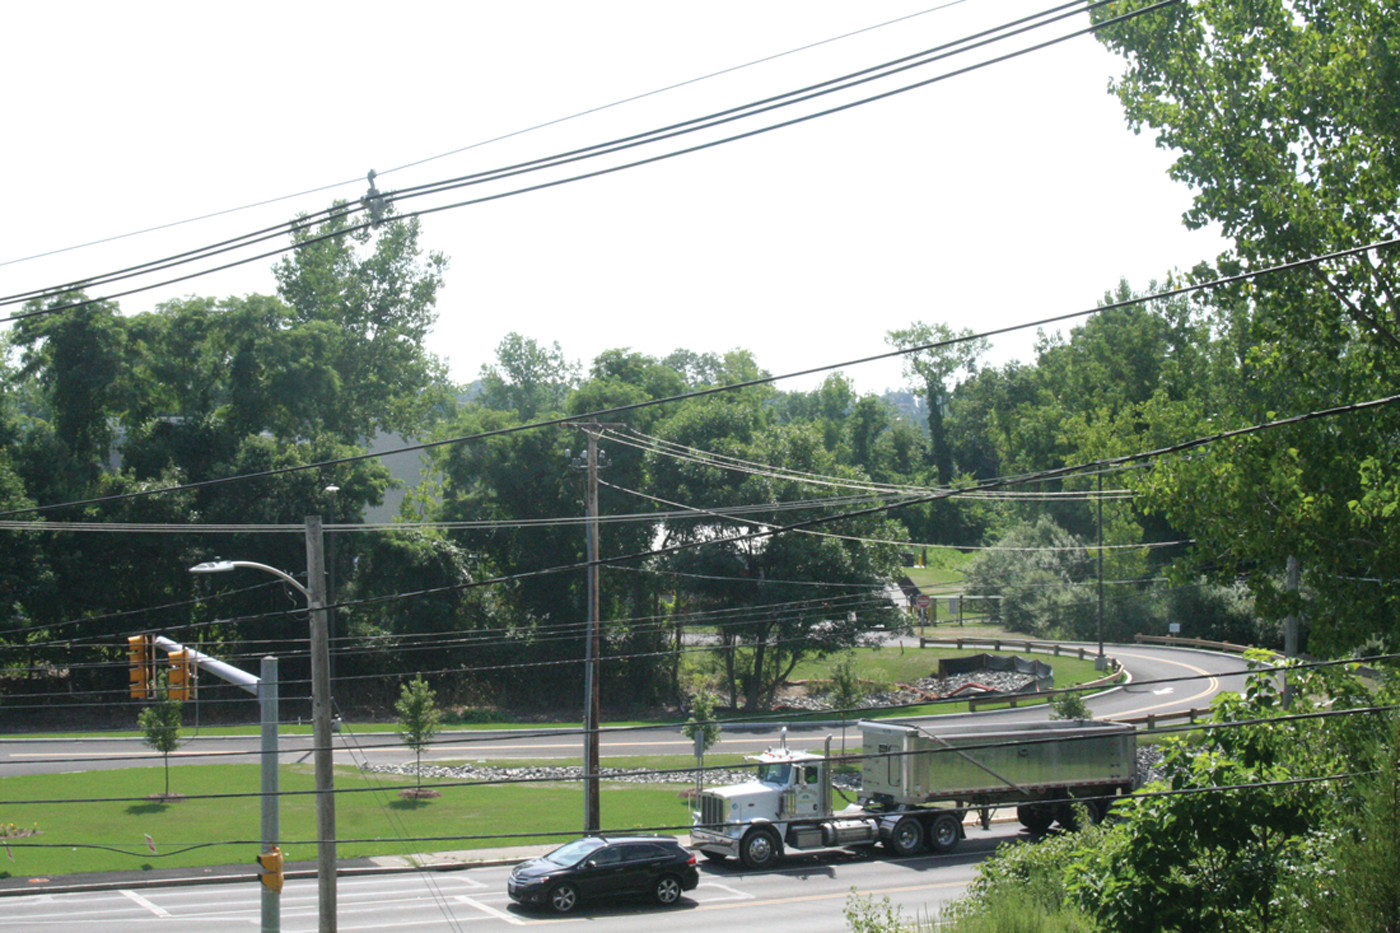 THE SITE: The CubeSmart location is across the street on Phenix Ave., and the sign would be seen from this view, on Phenix, and from Routes 295 and 37.